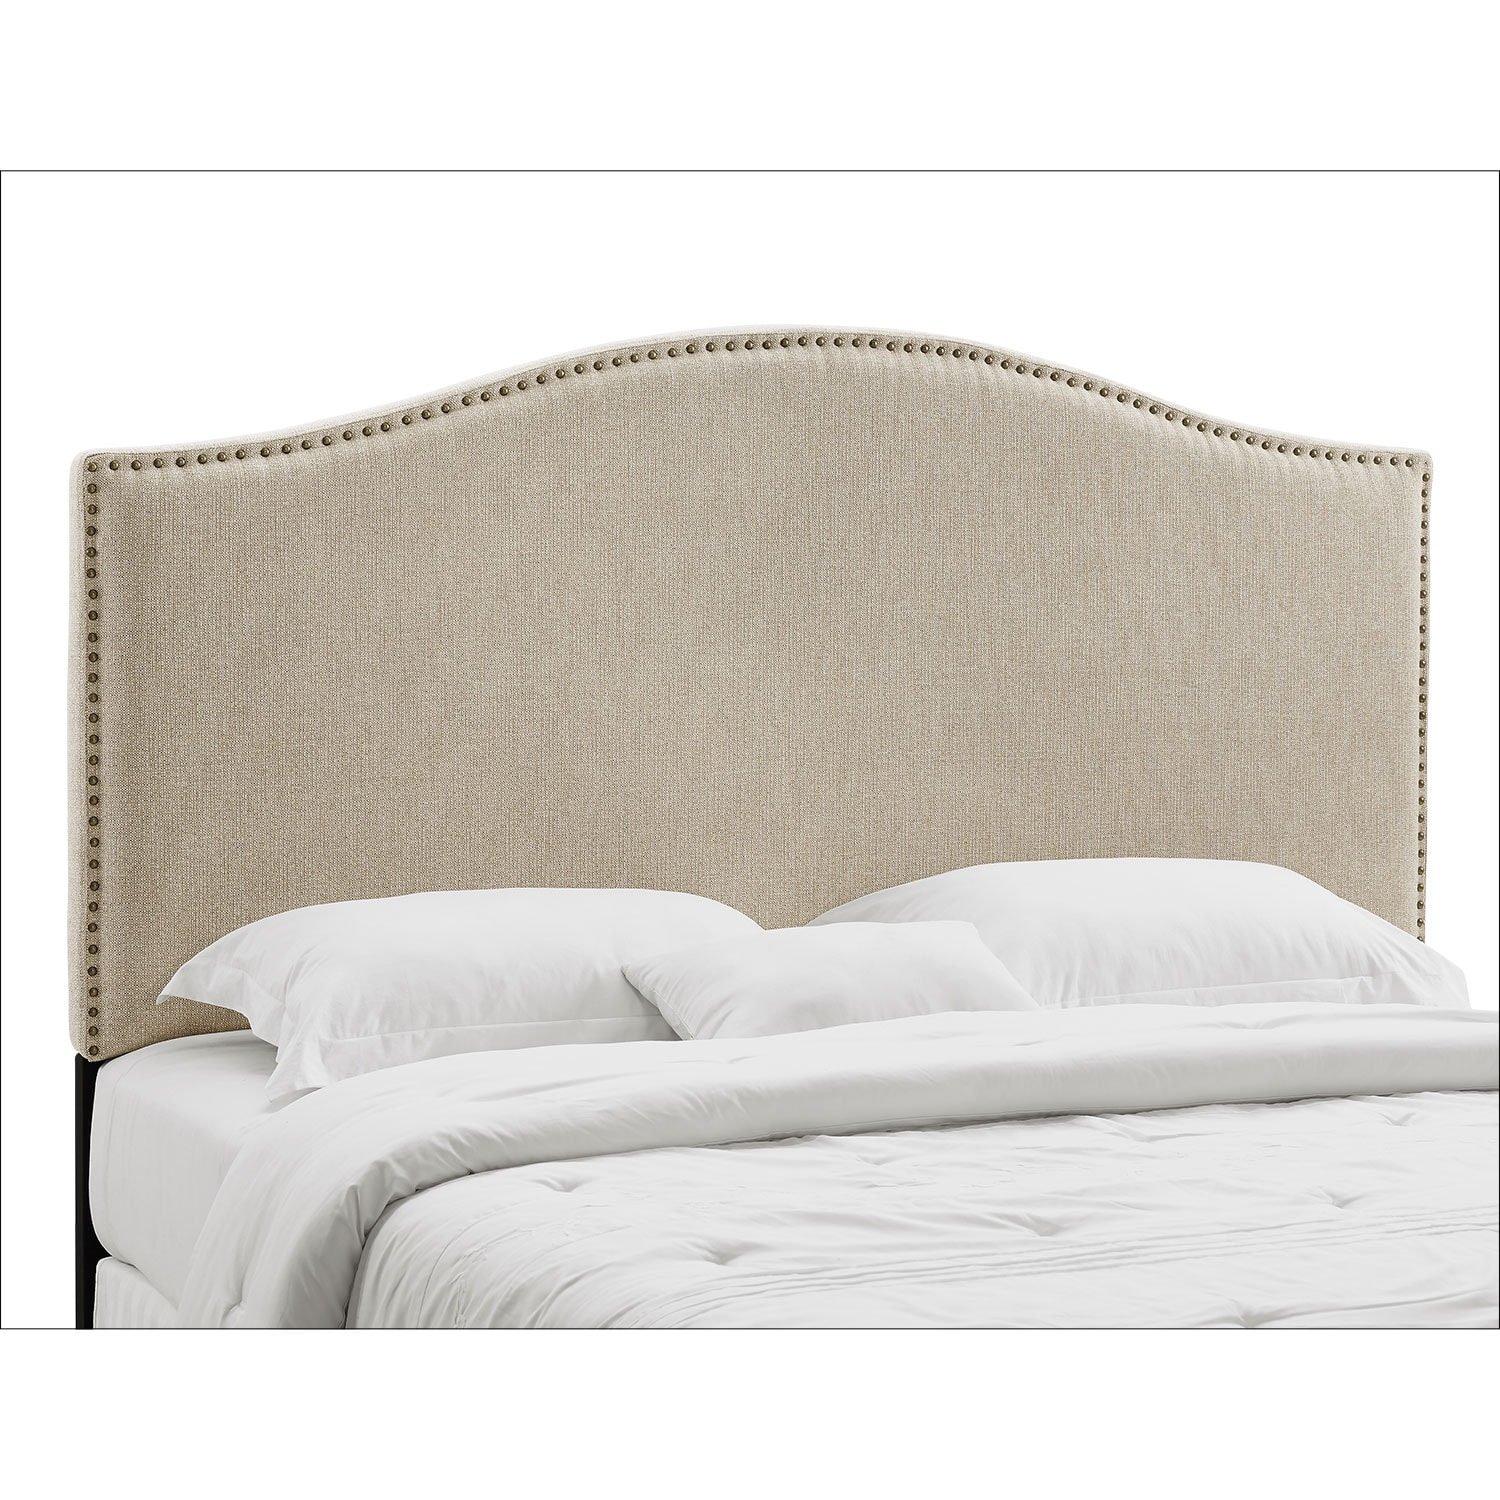 Wyatt king california king headboard value city furniture for California king headboard